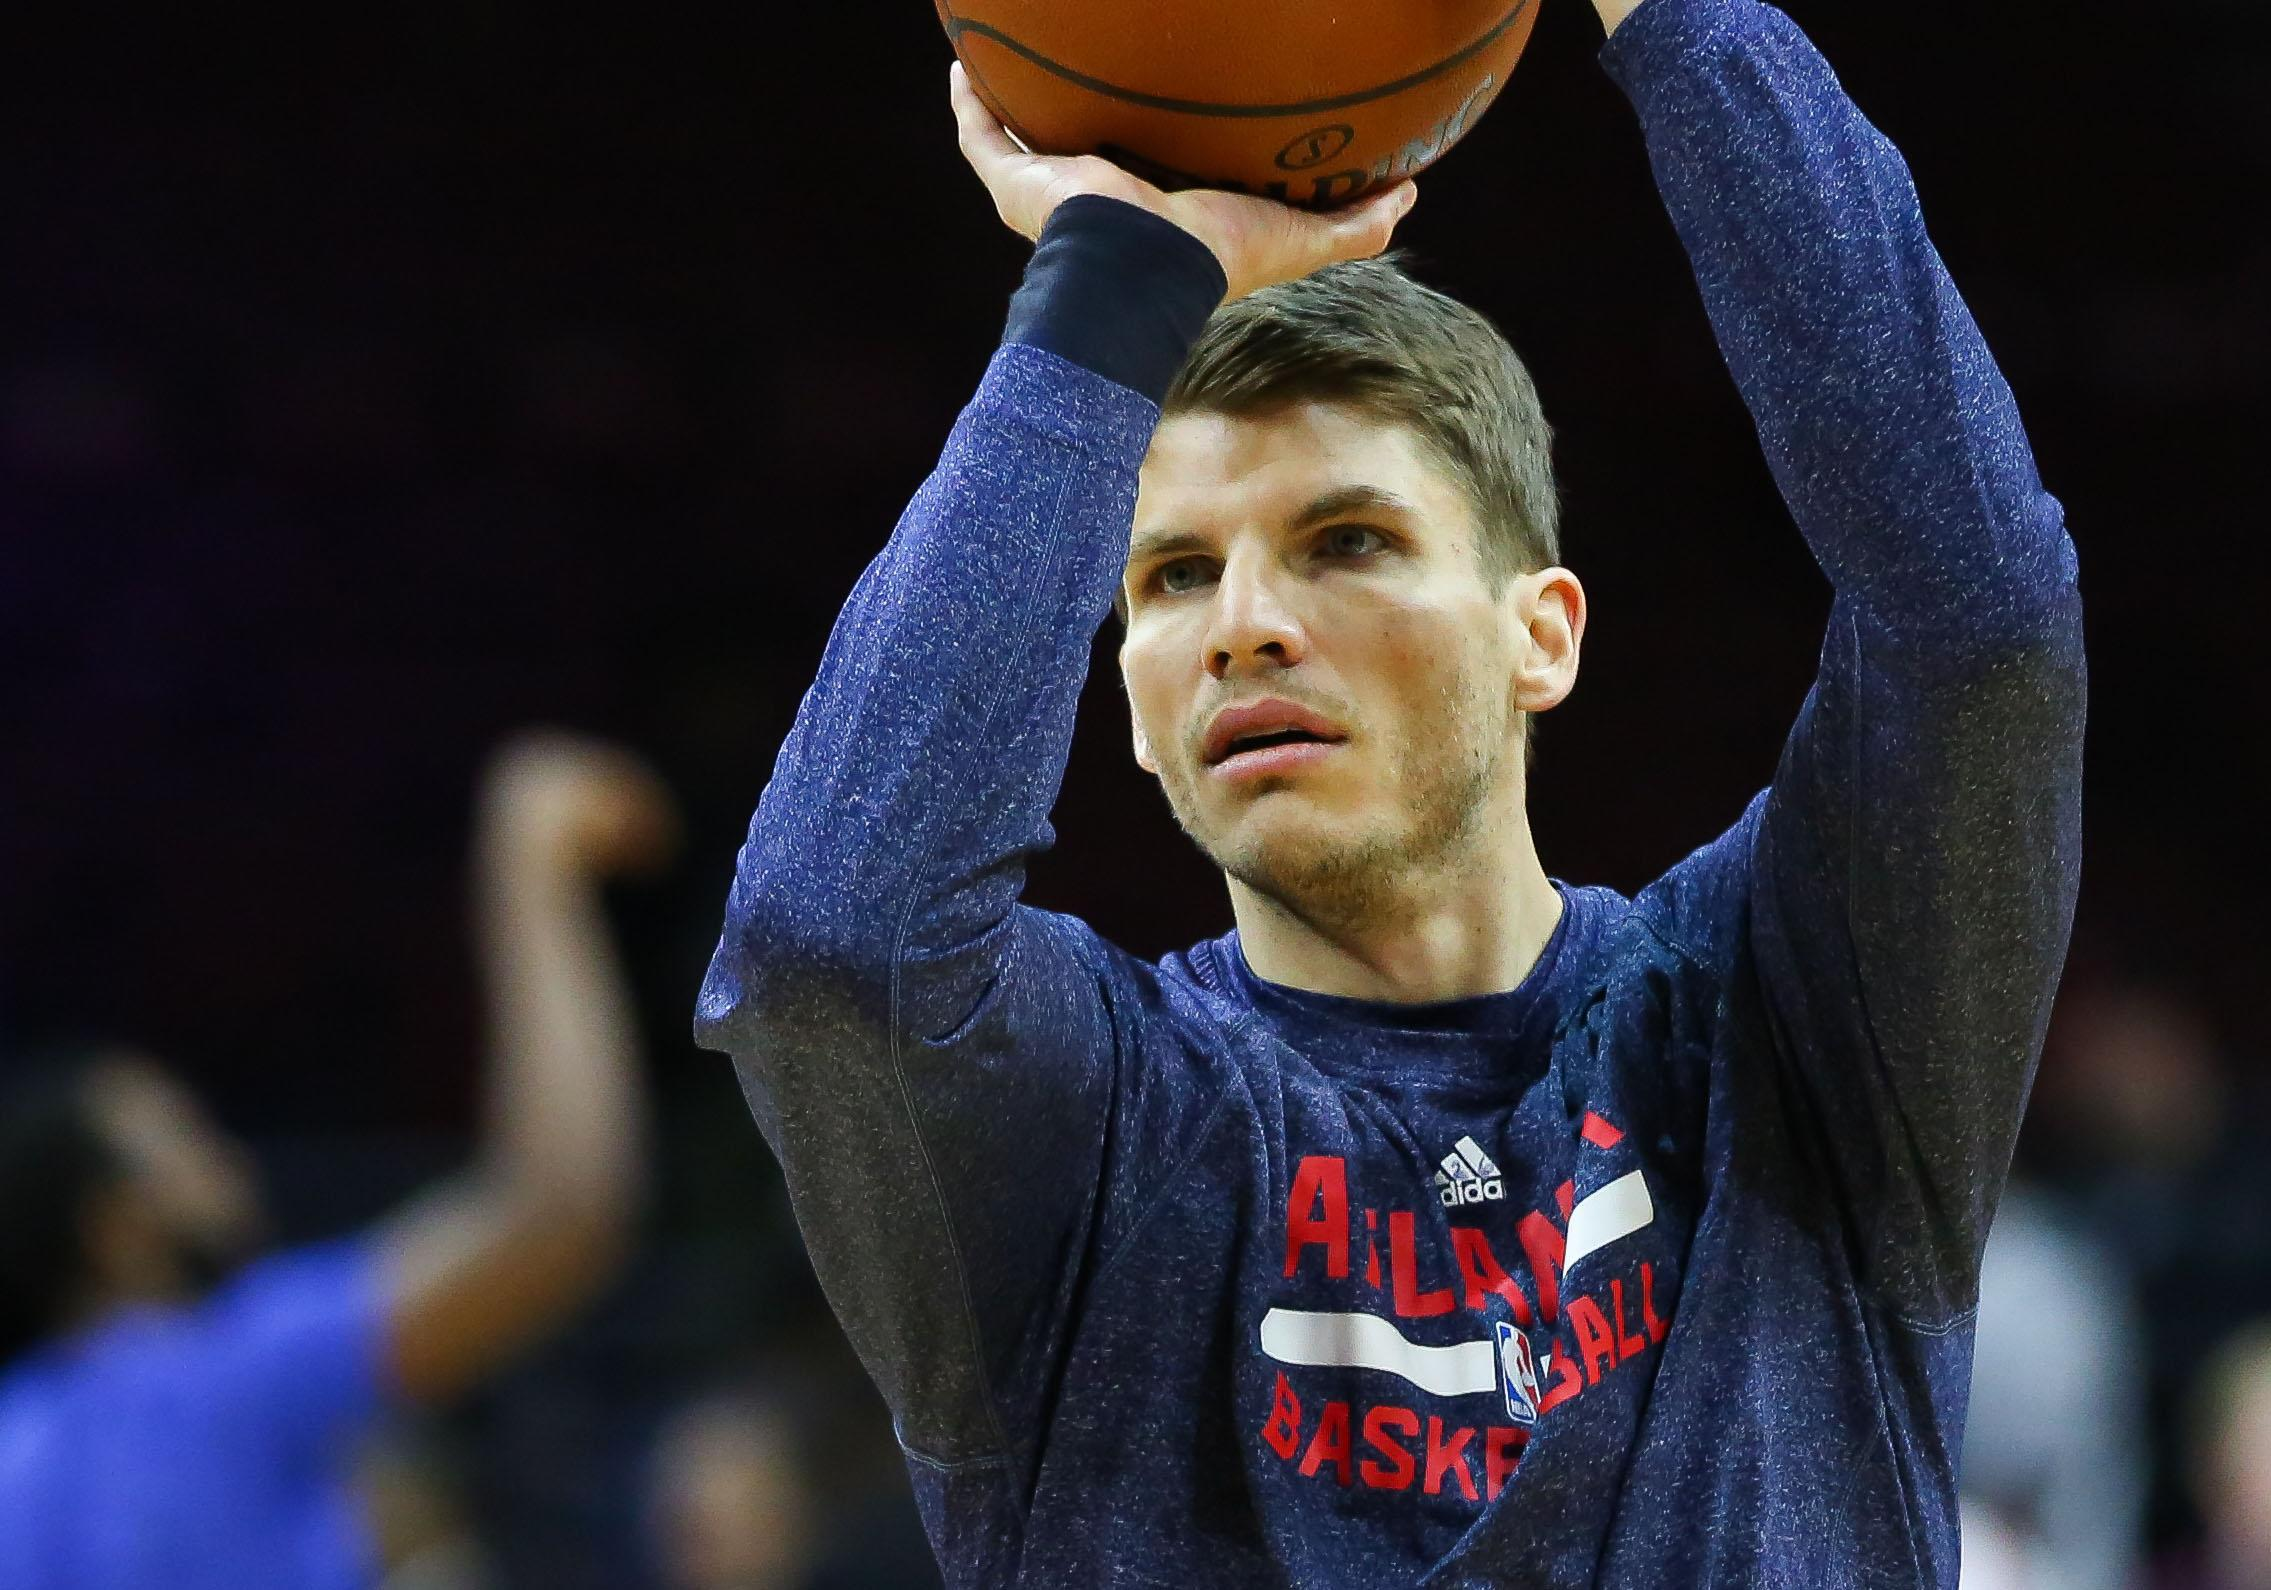 Kyle Korver has a 20-point checklist for his jump shot